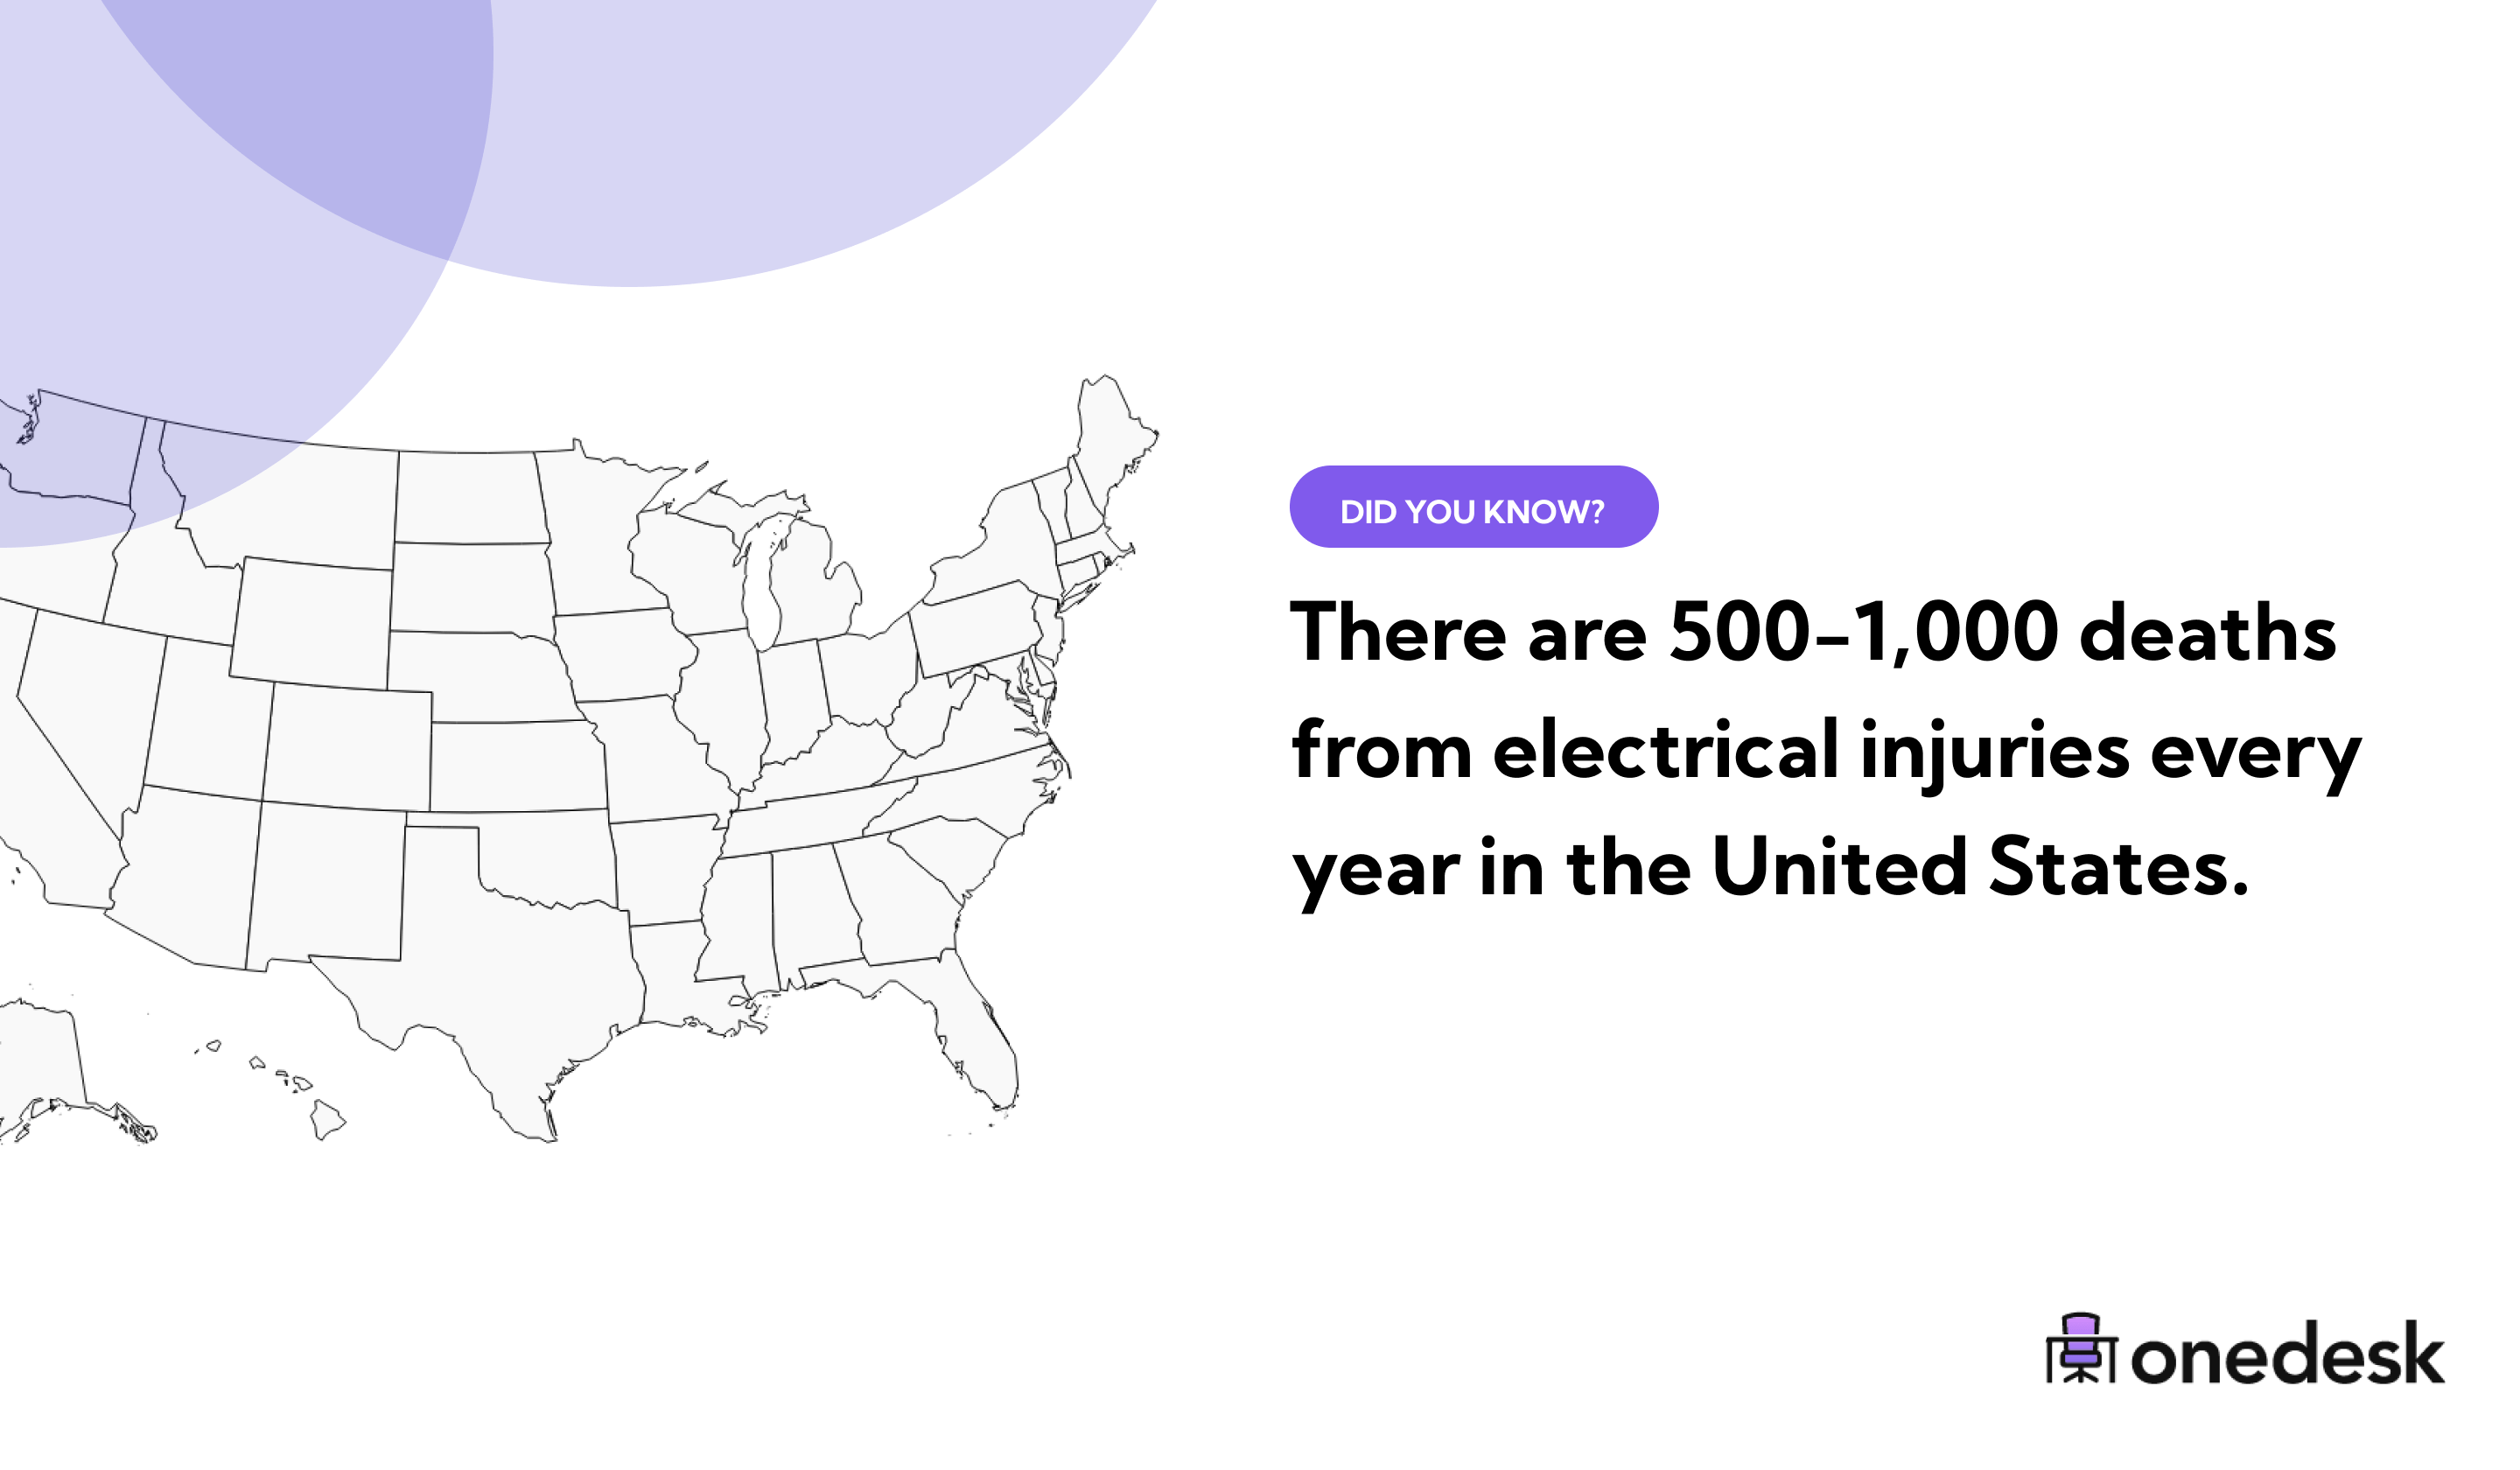 deaths from electrical injuries in the usa every year